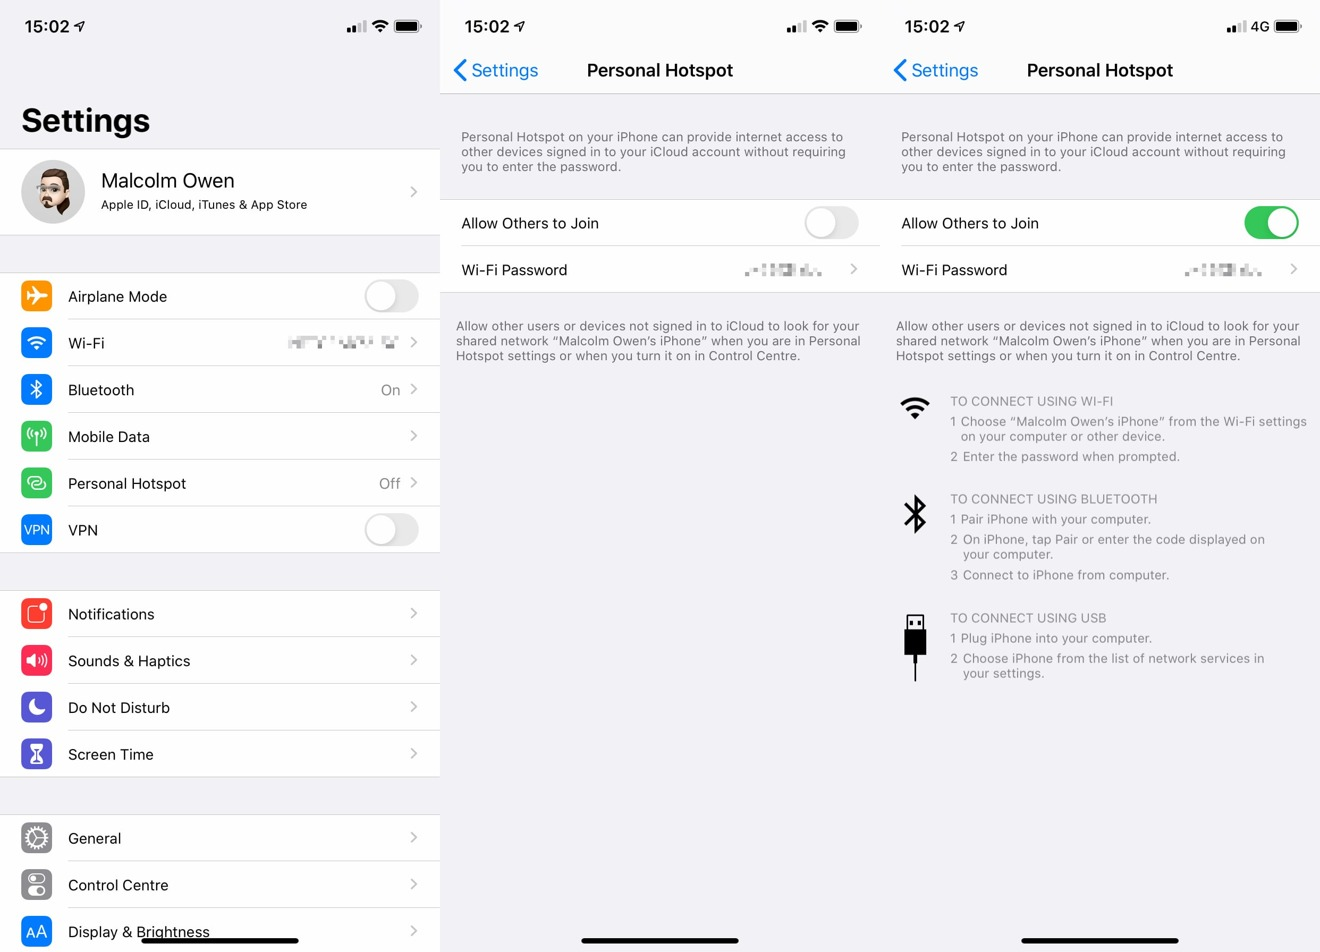 Enabling the Personal Hotspot in iOS.